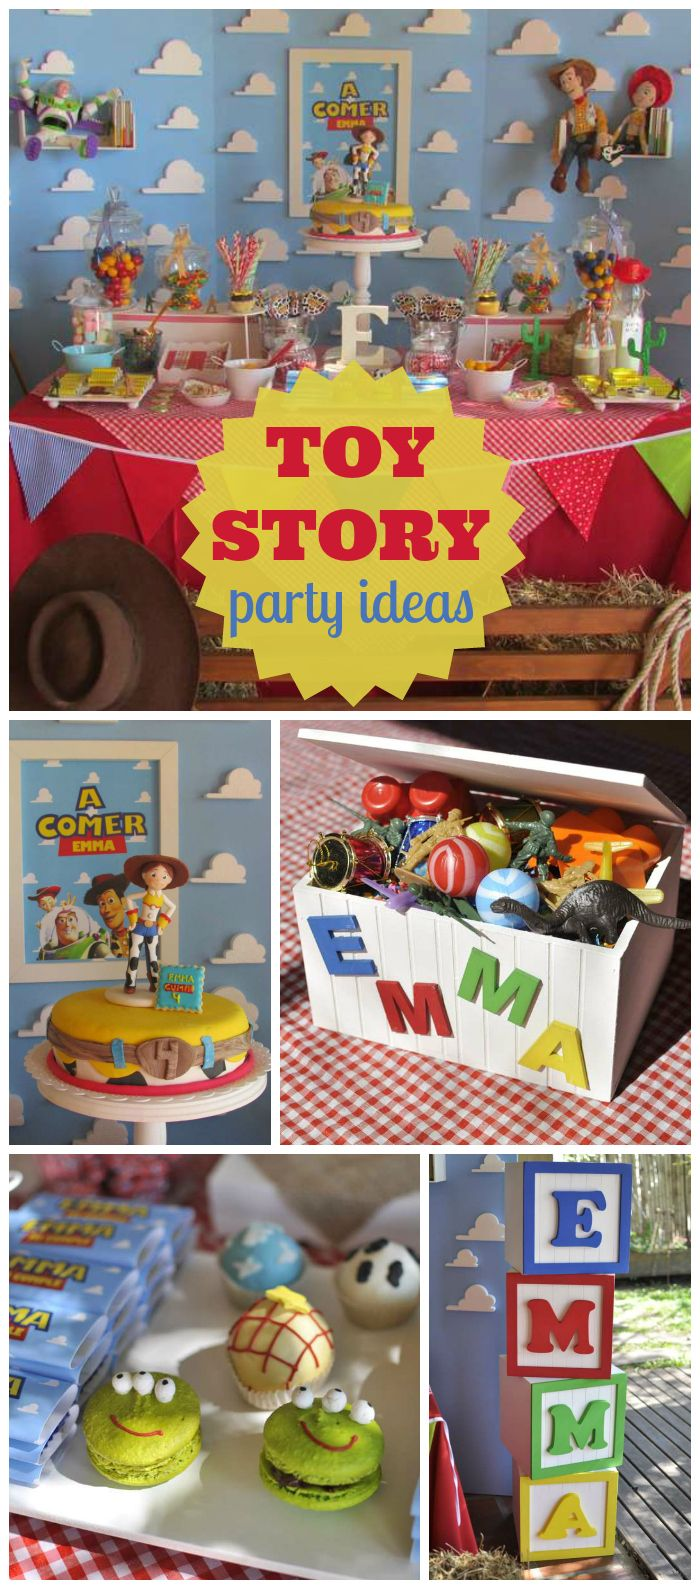 Toy story party ideas birthday in a box - A Toy Story Birthday Themed Party With Fun Decorations And Cake See More Party Planning